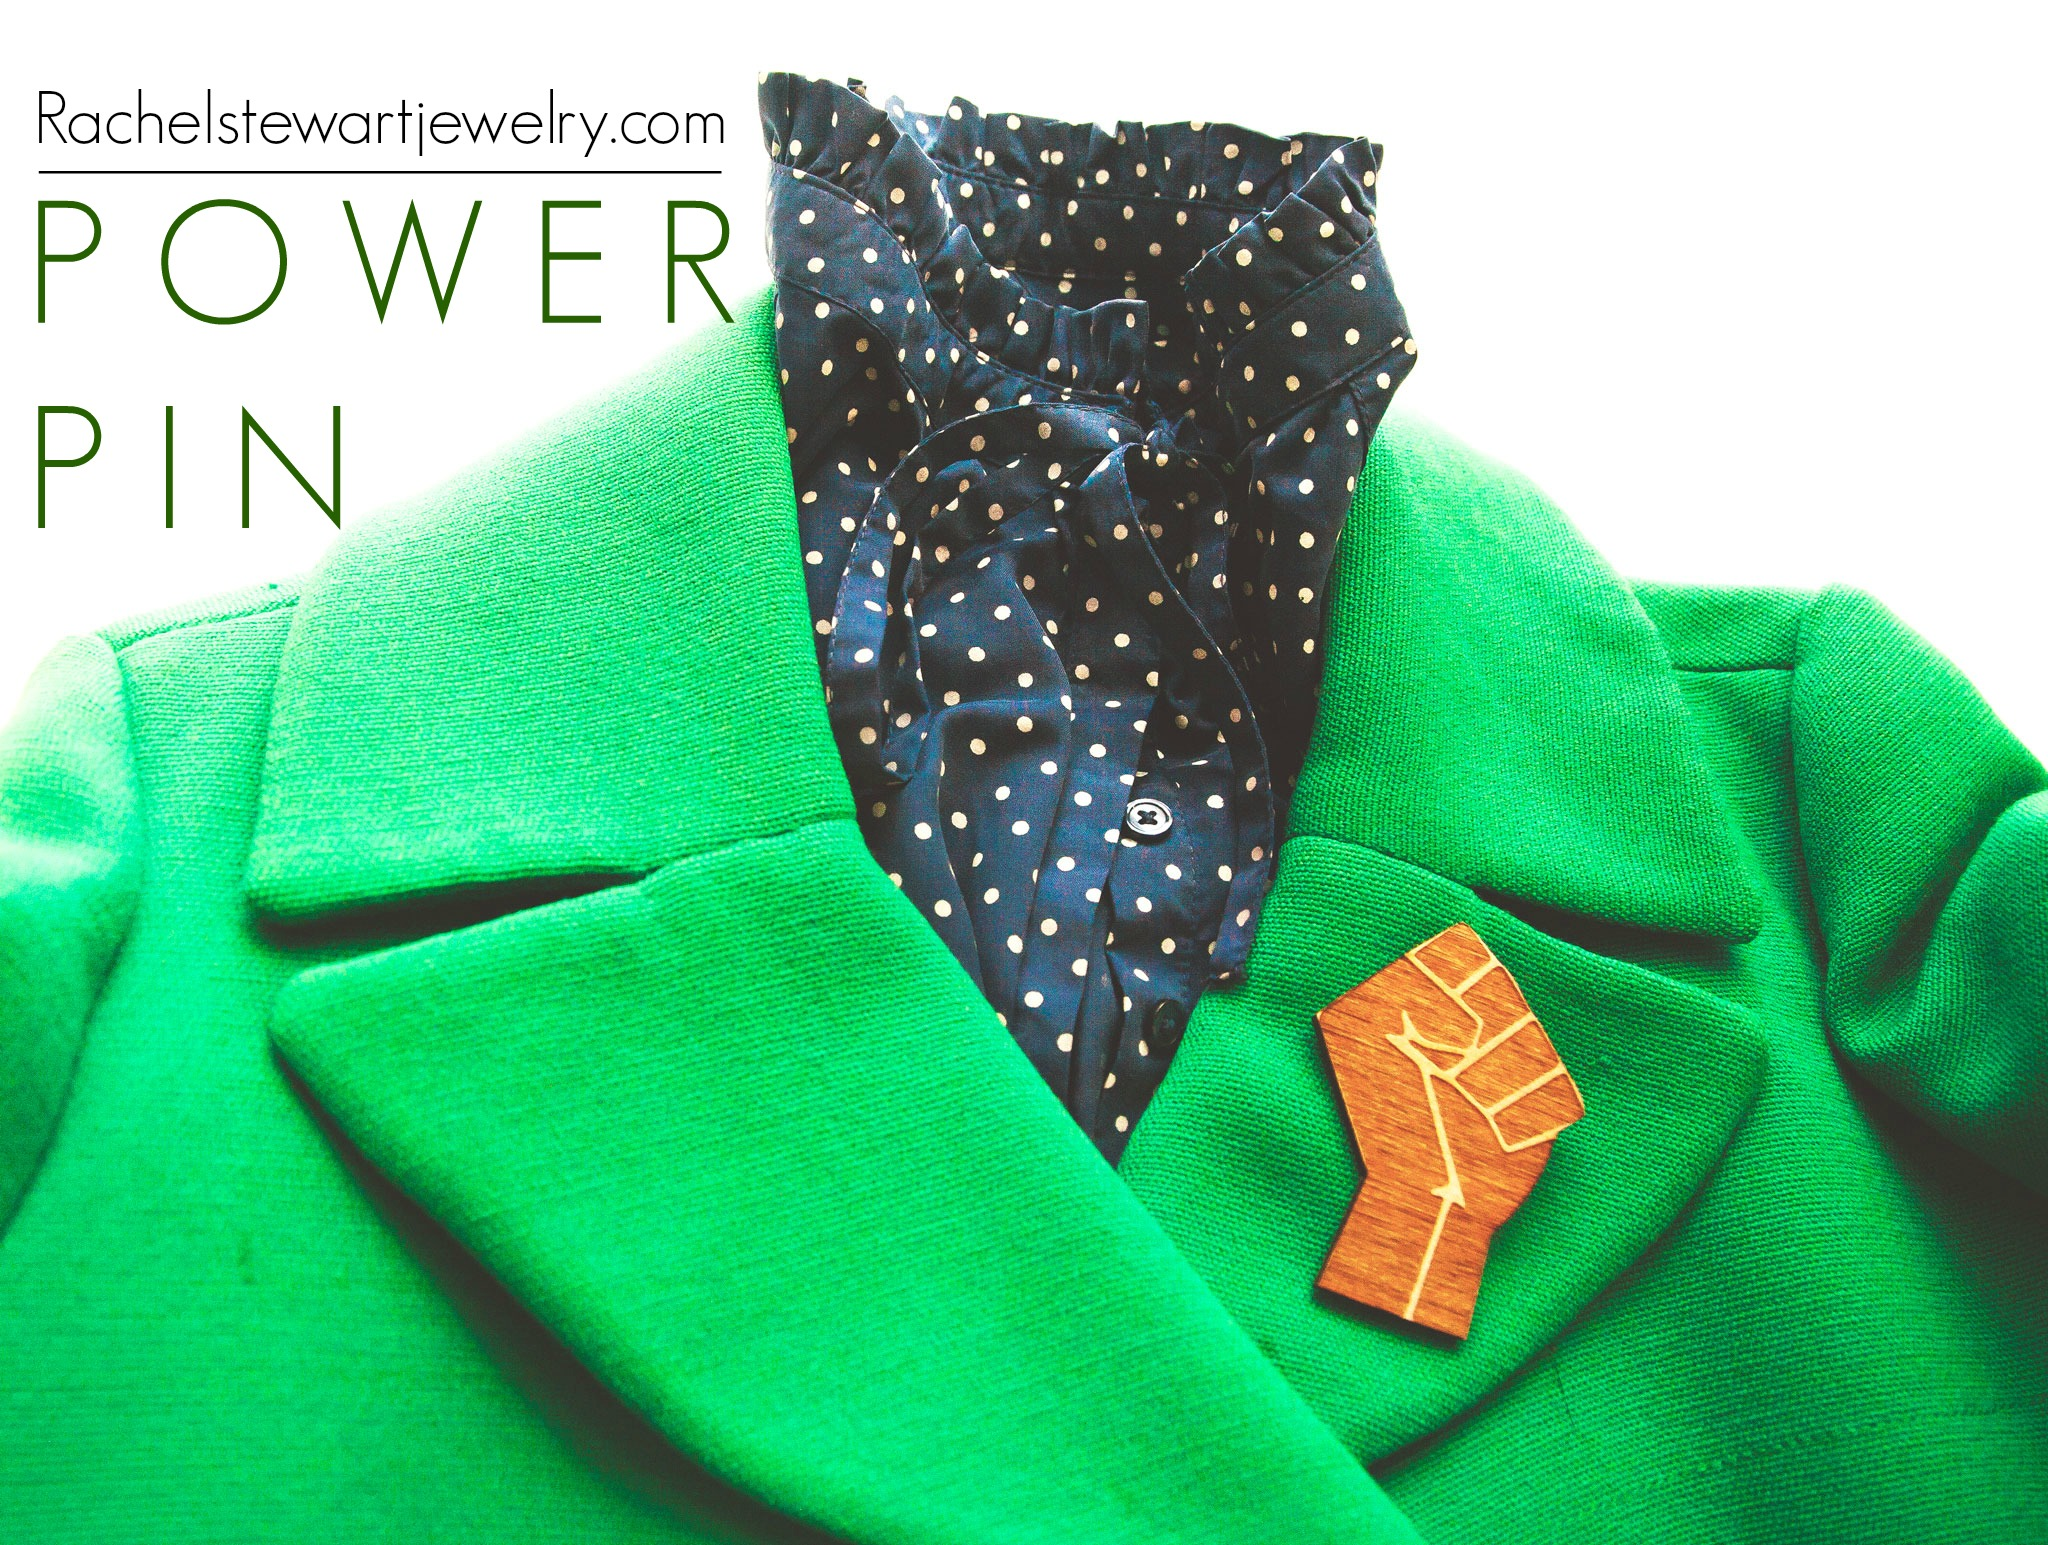 power-pin-pride-rachelstewart-blackpower1-jewelry.jpg